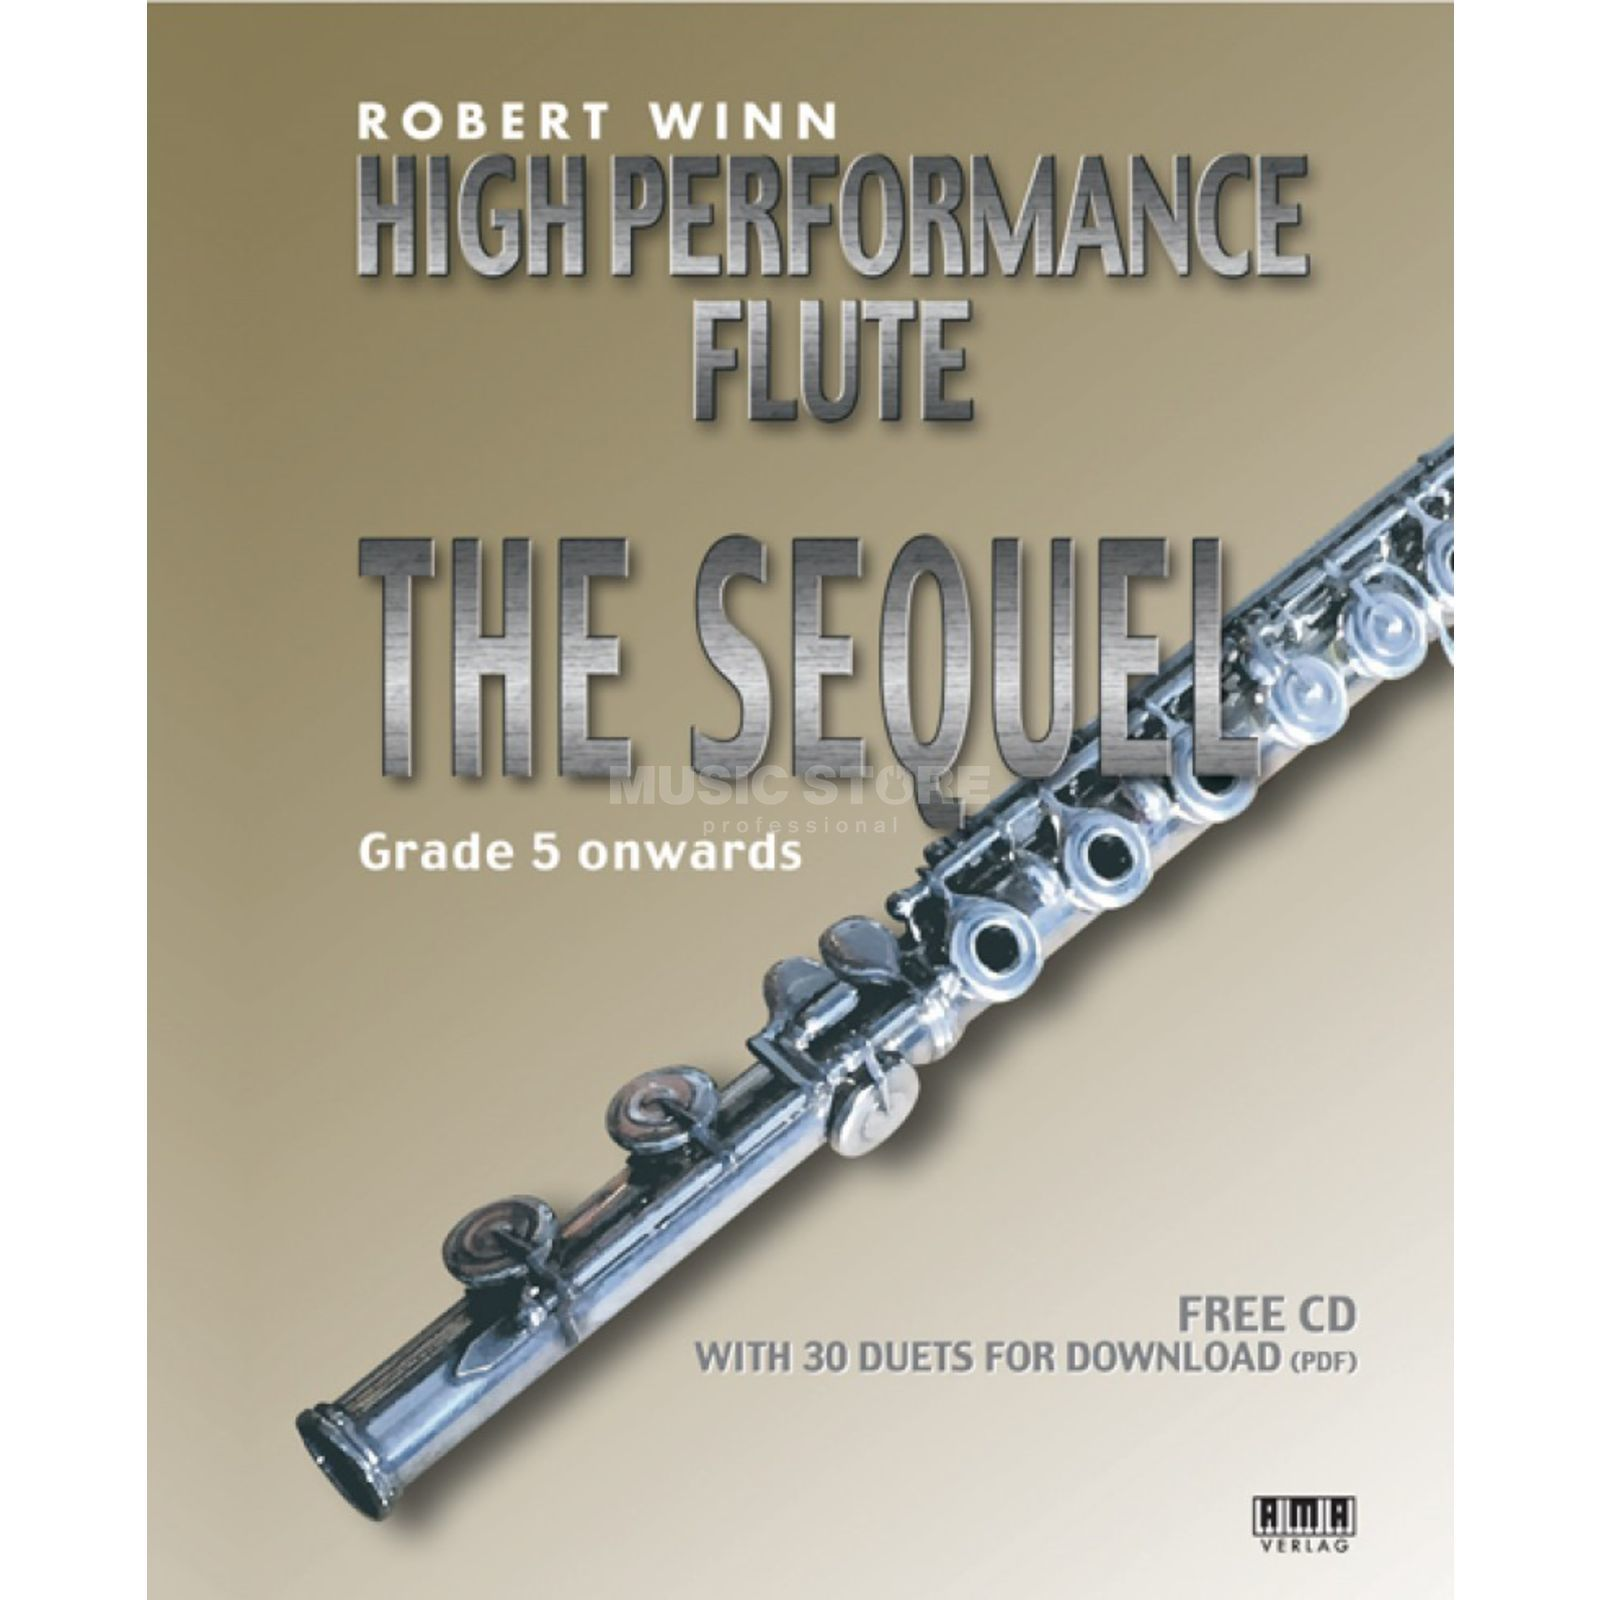 AMA Verlag High Performance Flute - The Sequel Product Image